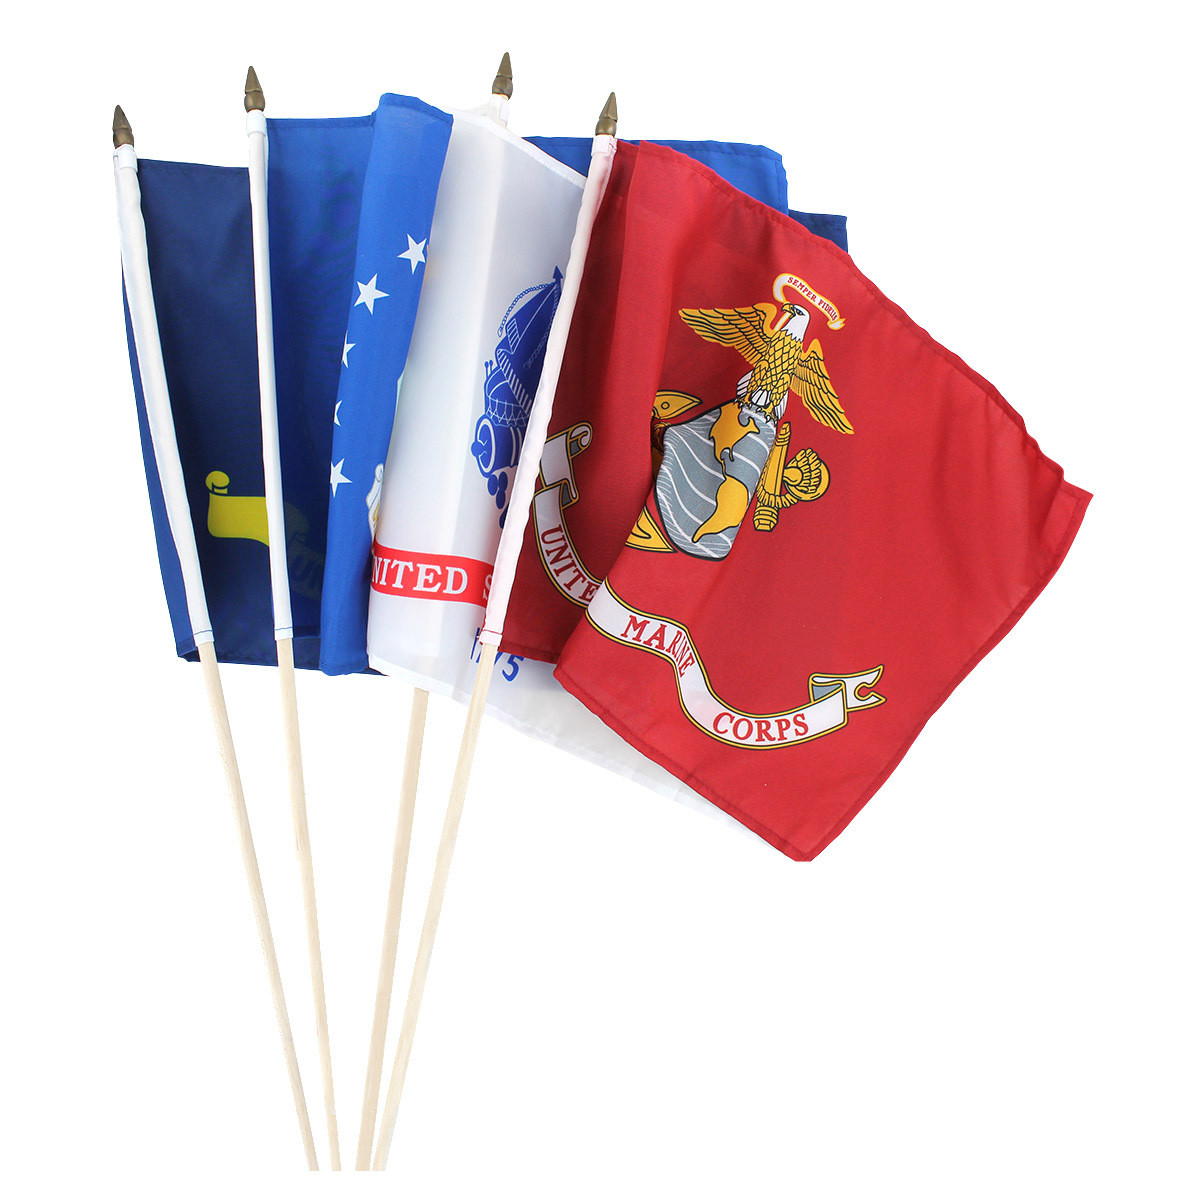 Military Stick Flags 12 x 18 inch